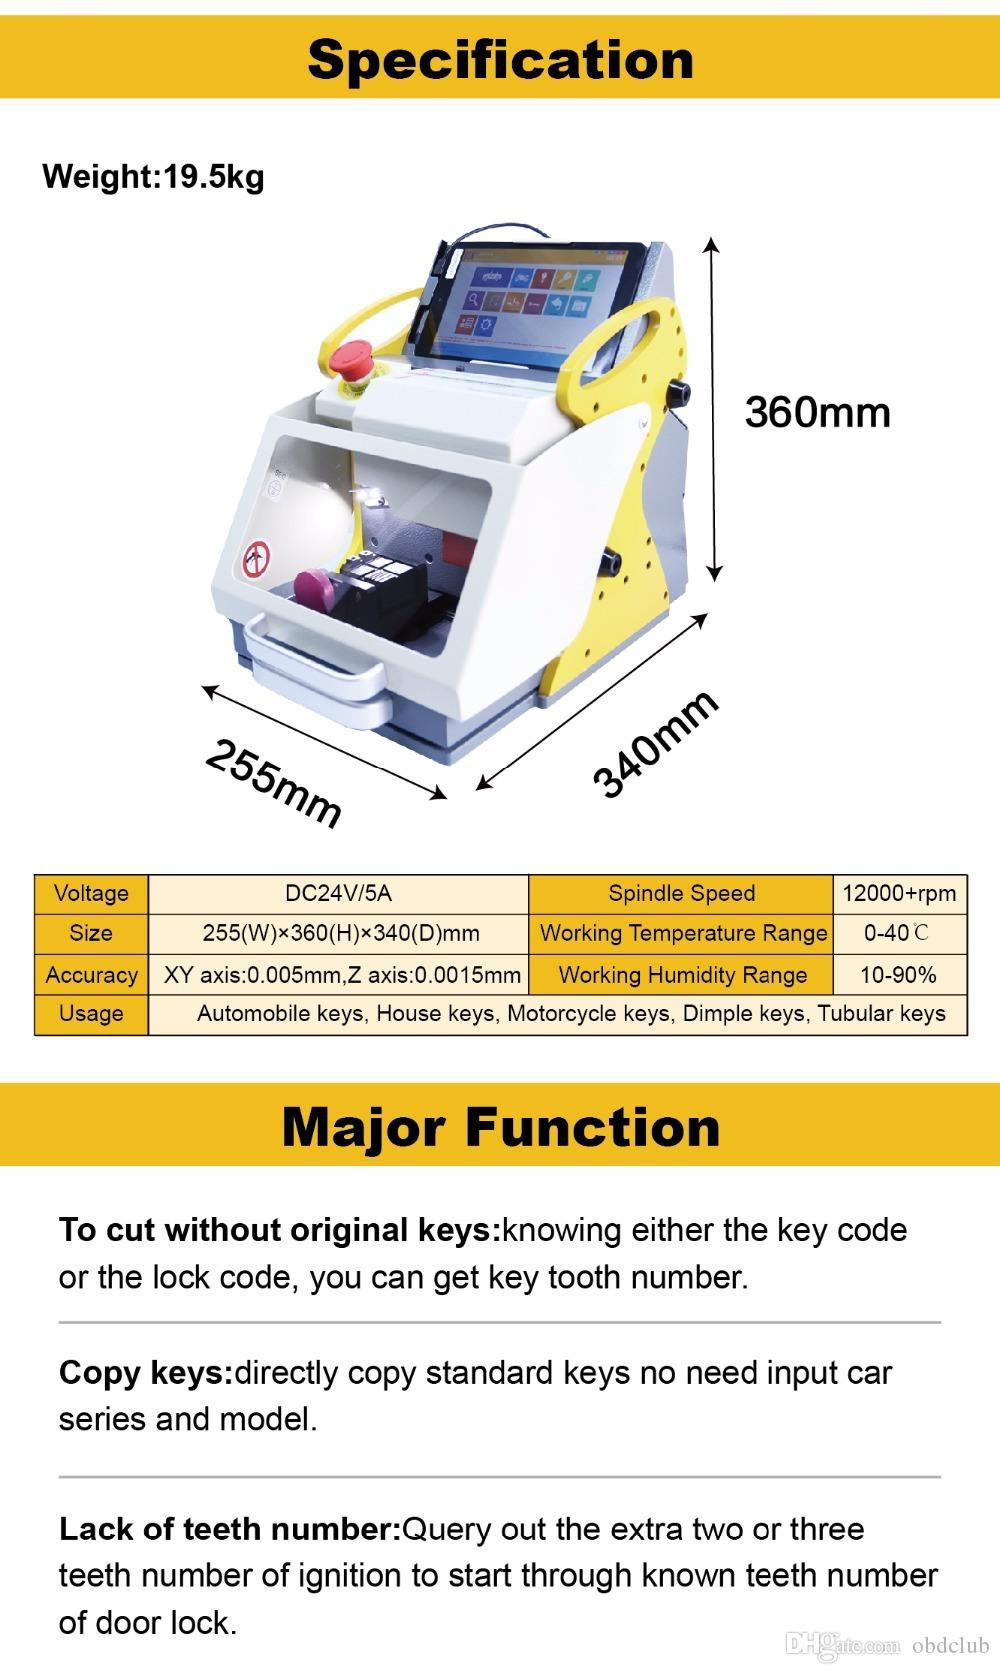 automatic Original SEC E9 Full Clamps CNC Automatic Key Cutting Machine For Car Keys & House Keys Better Than Slica I80 Key Machine